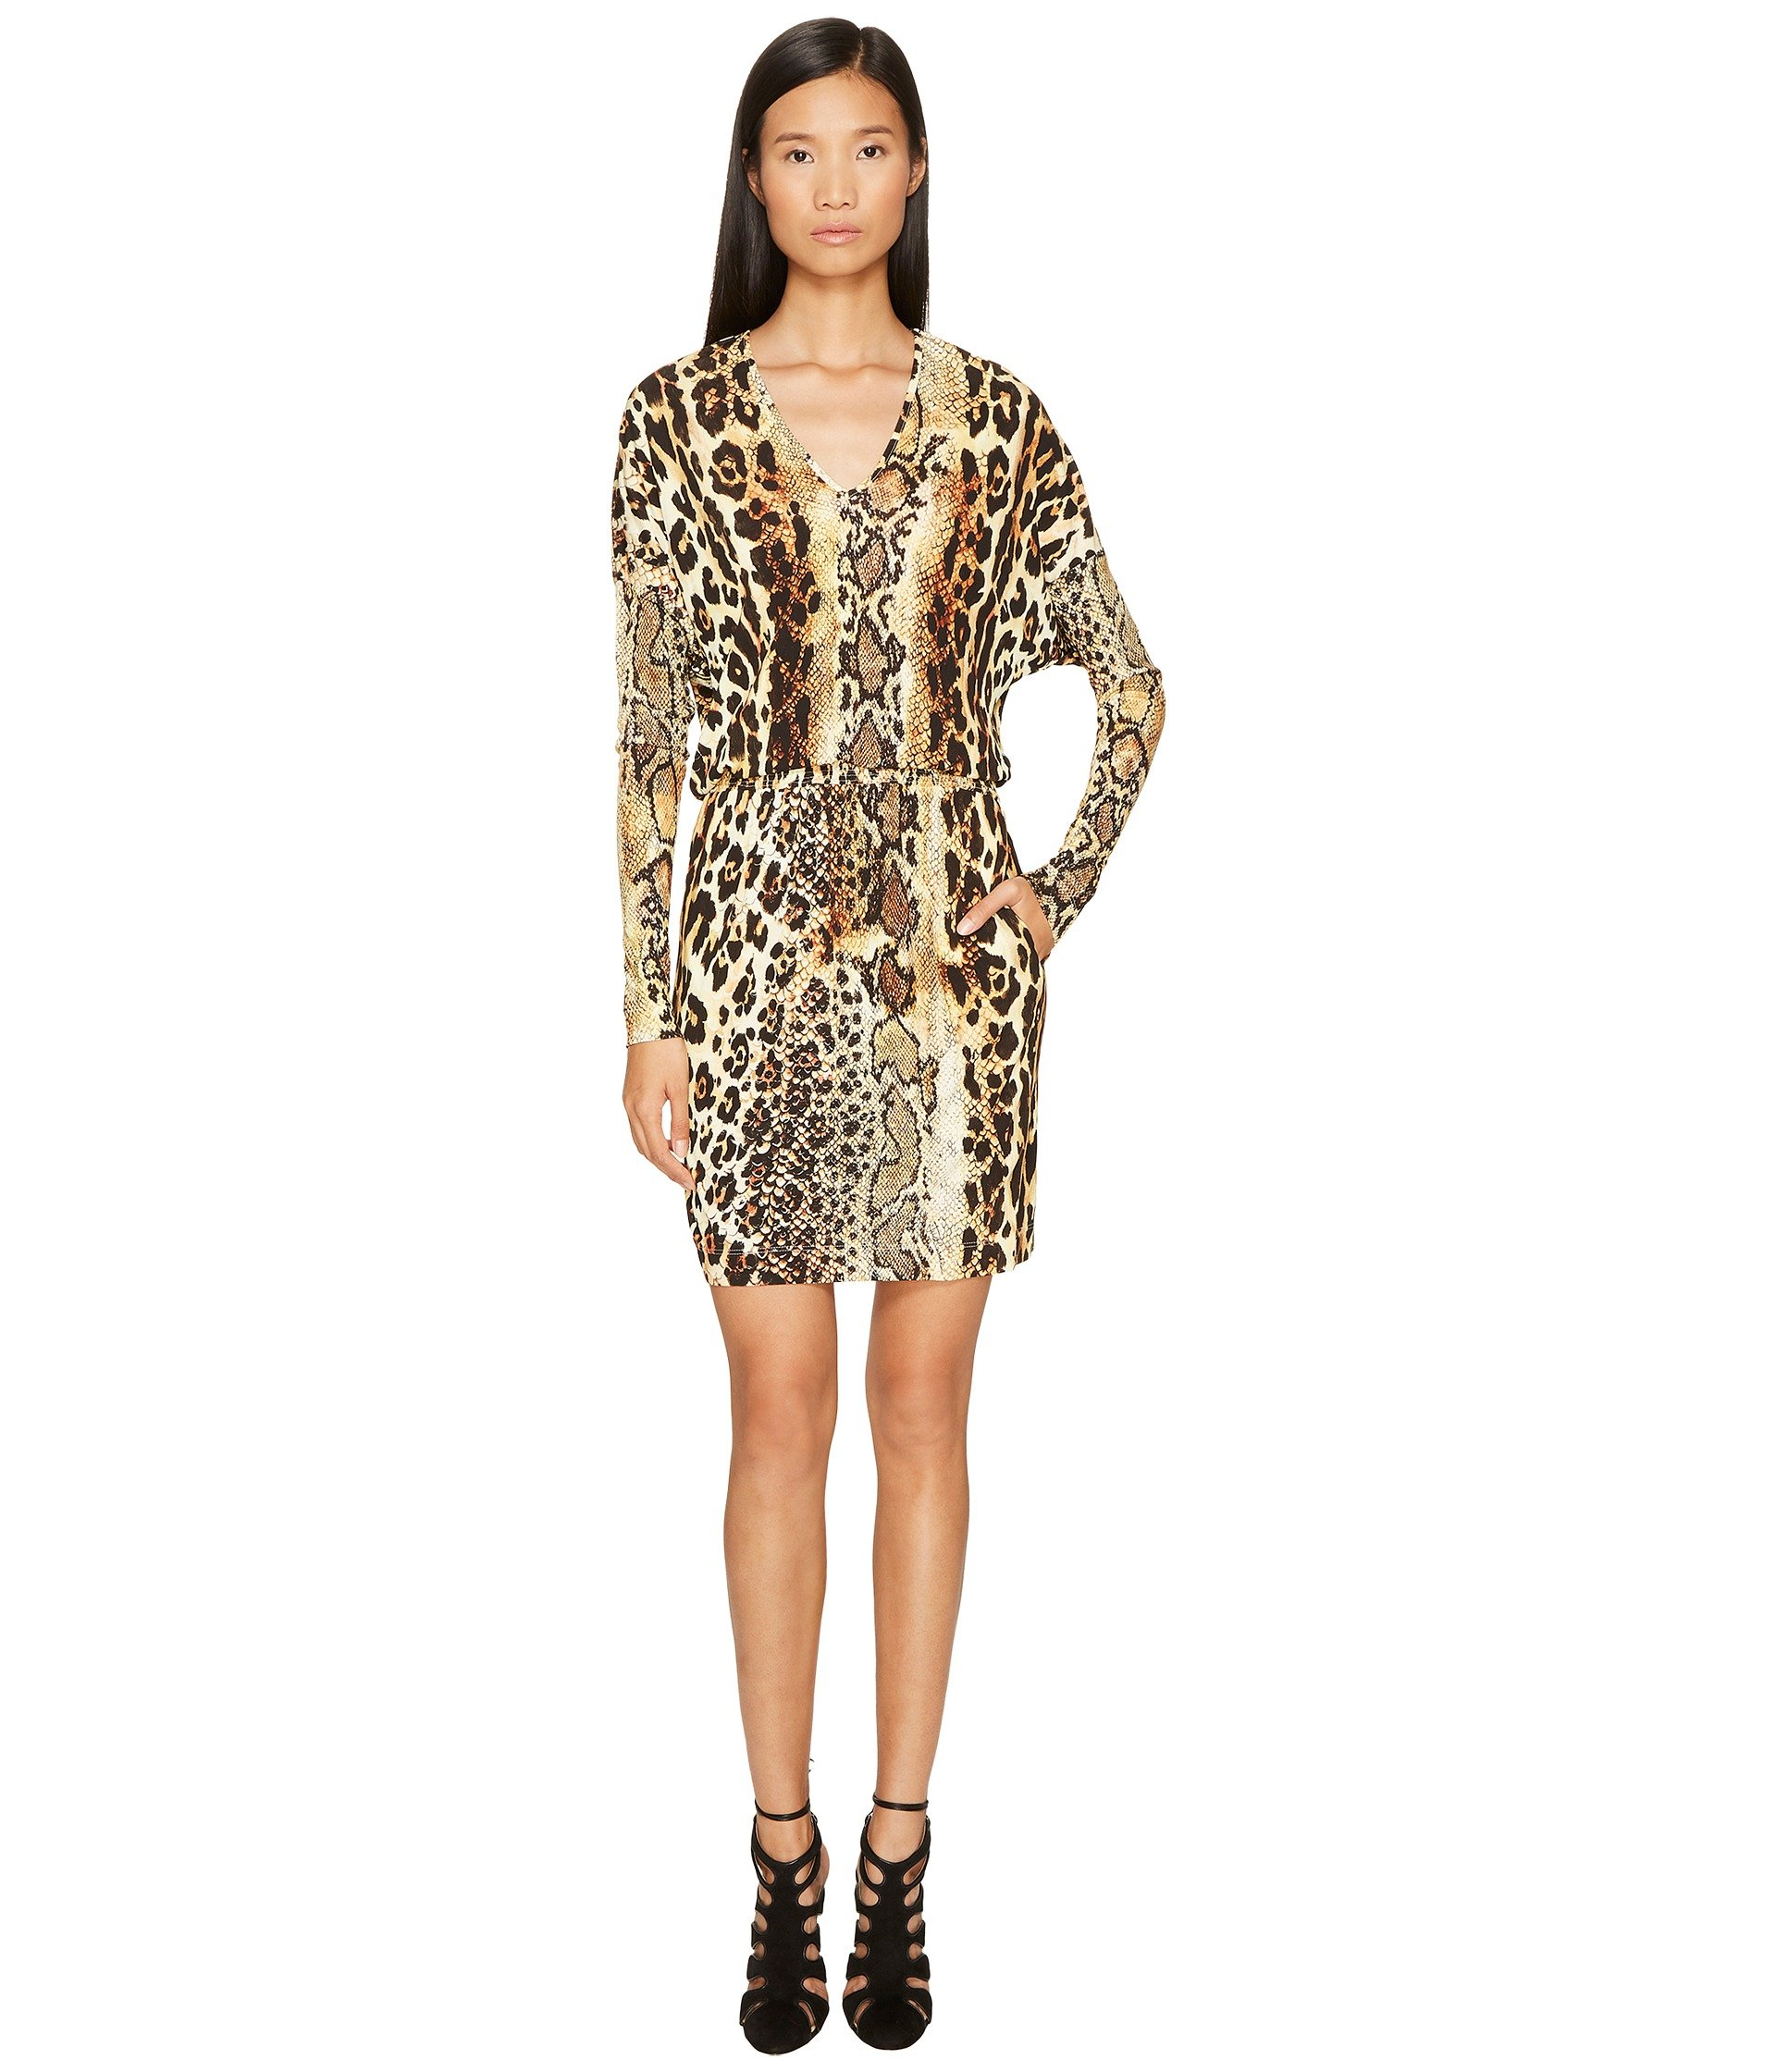 LONG SLEEVE V-NECK MIXED ANIMAL PRINT JERSEY DRESS